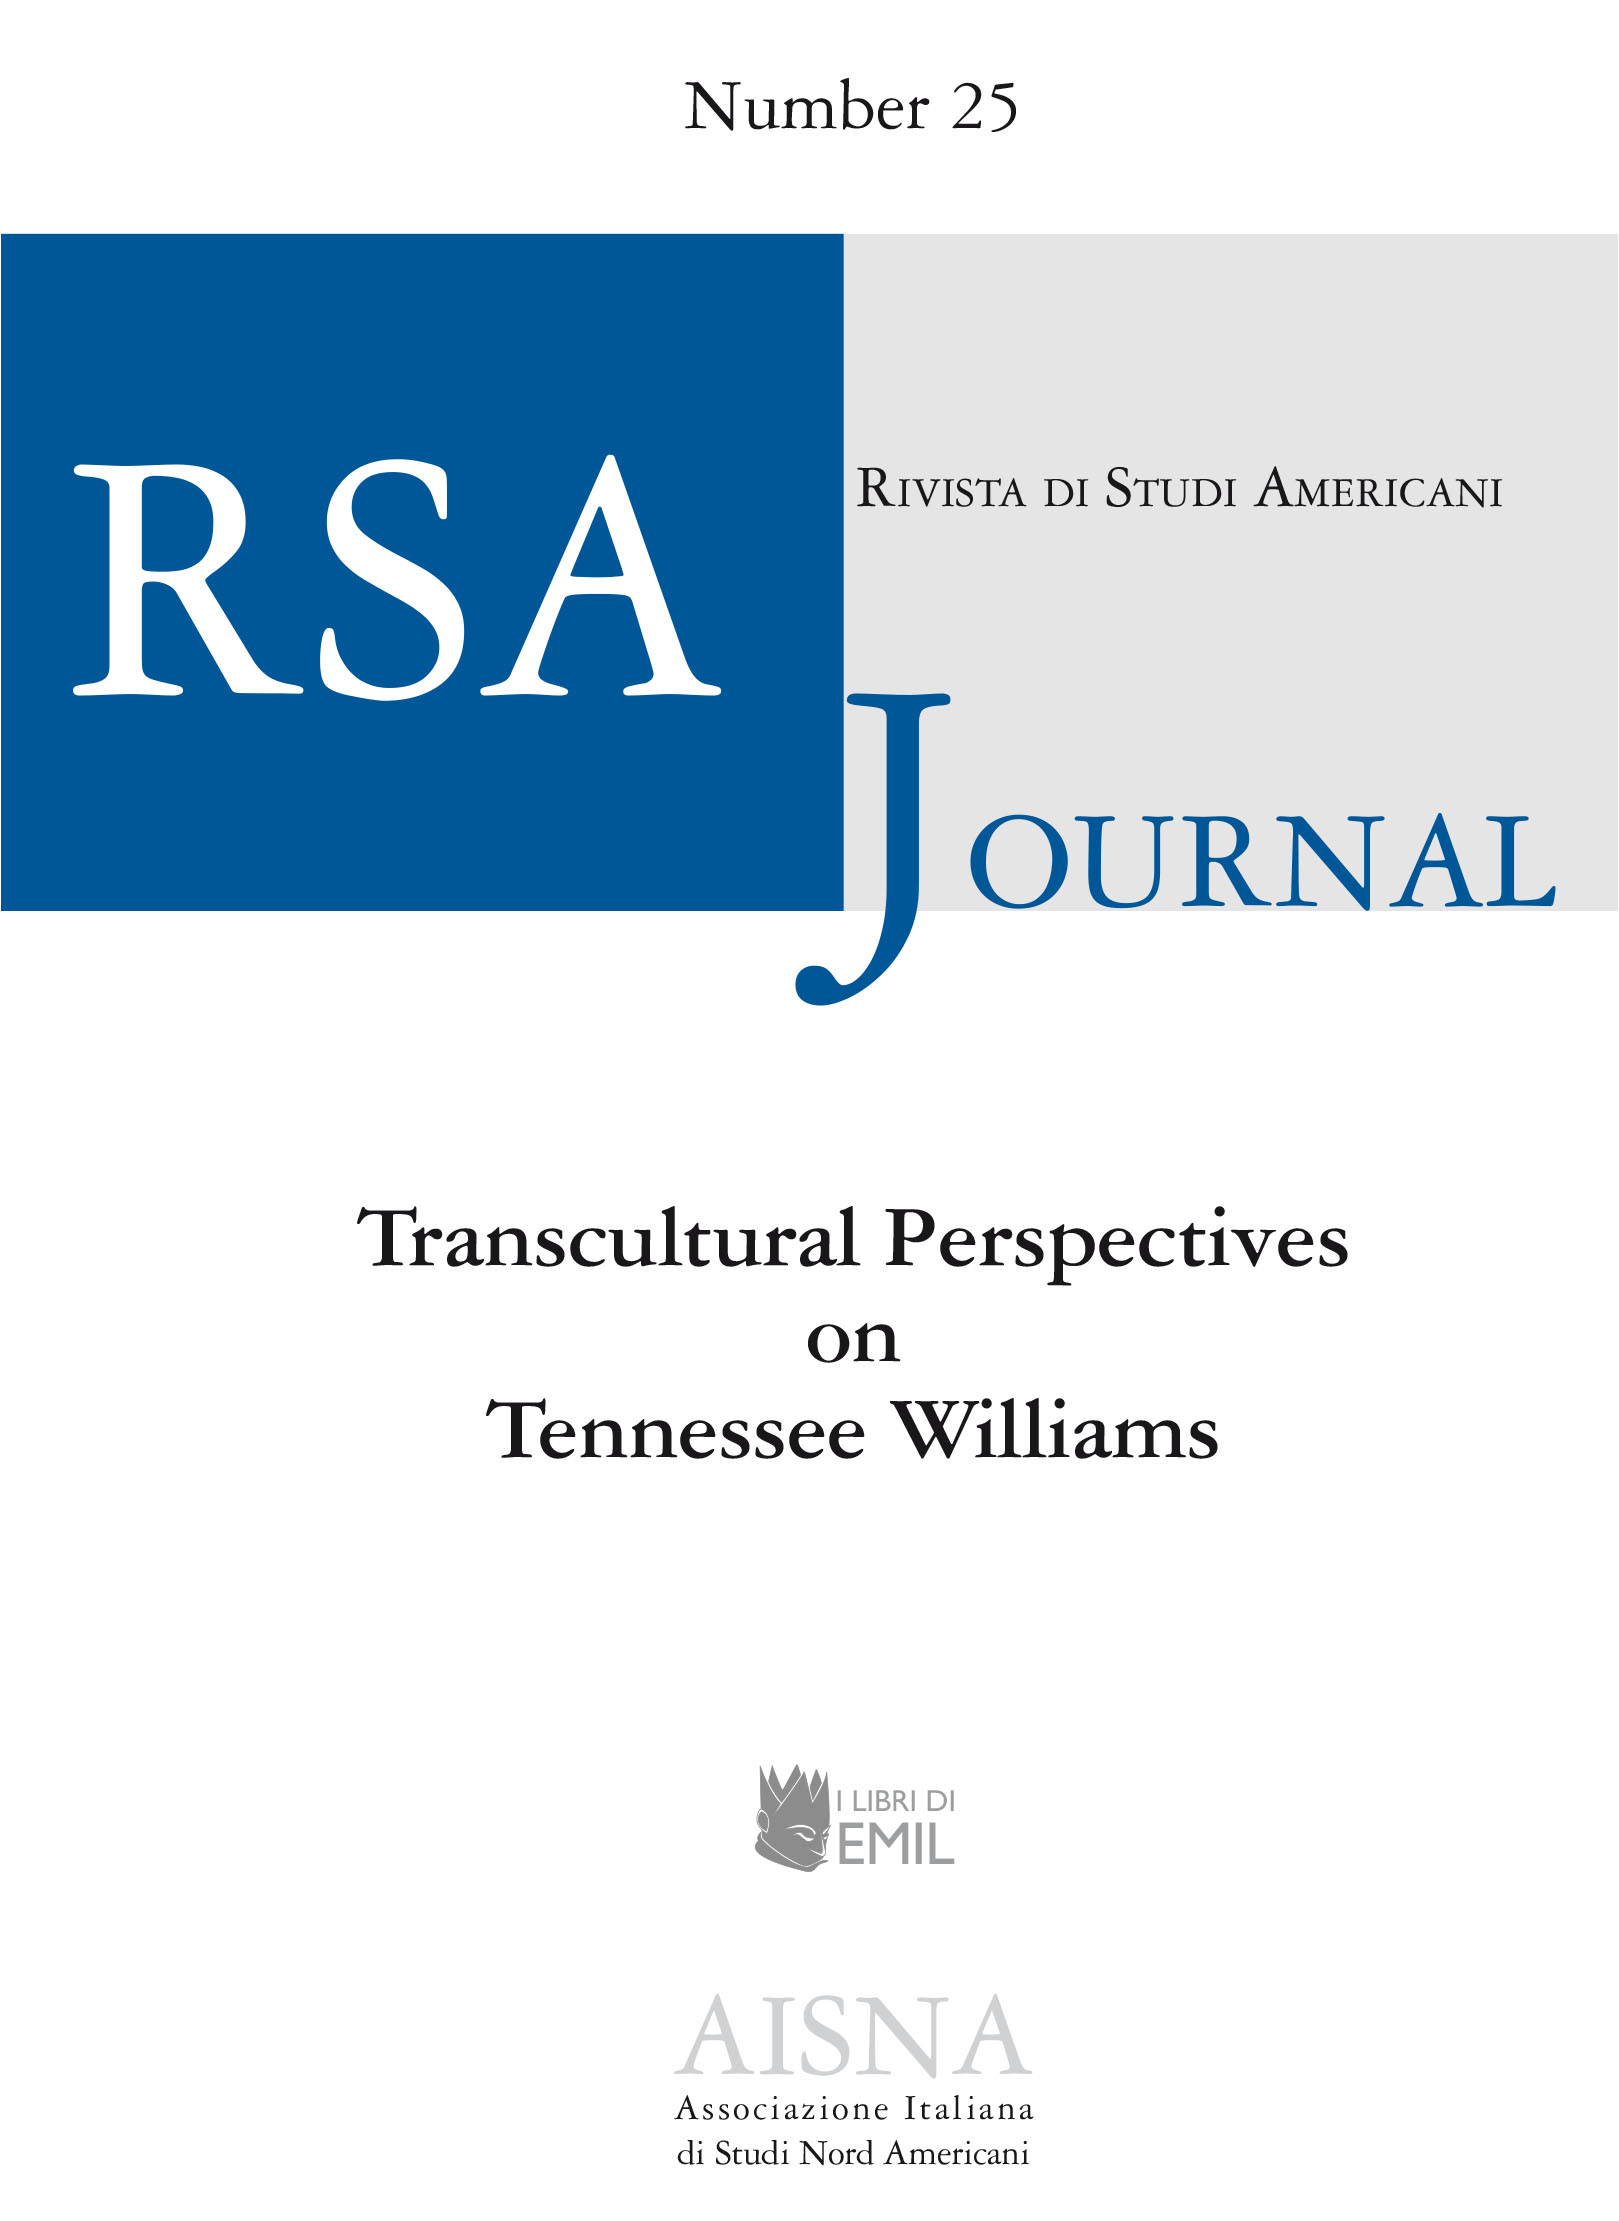 RSA Journal - Rivista Studi Americani, 25